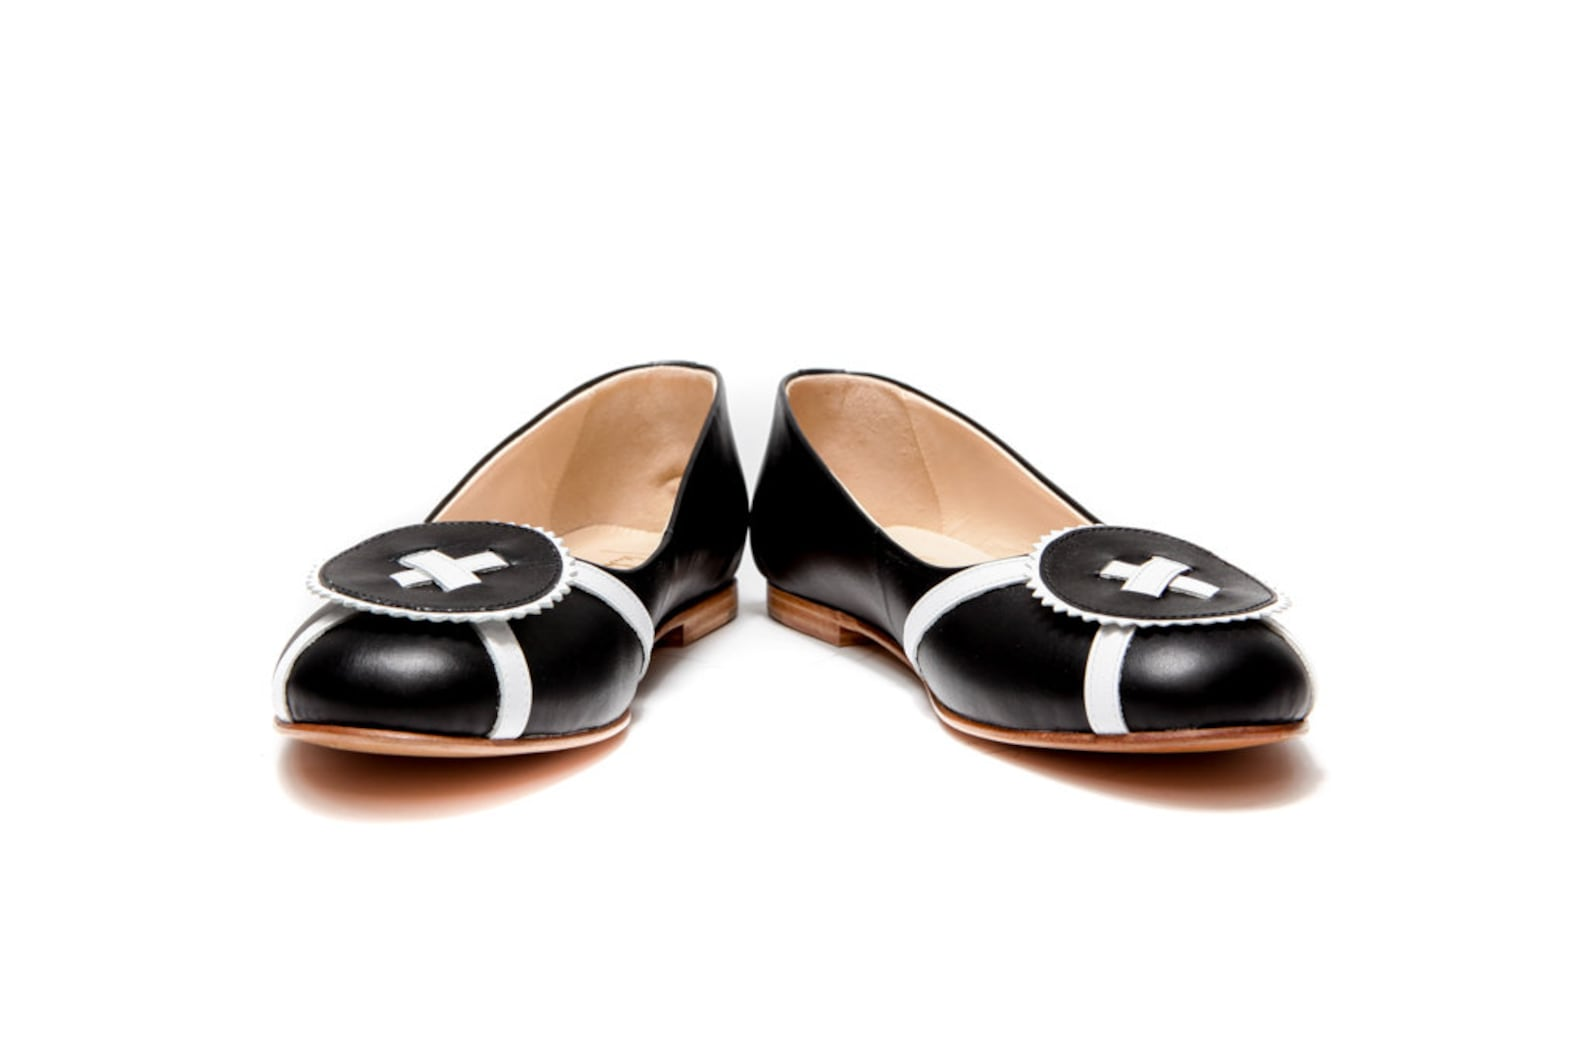 leather black ballet flats/ ballerina shoes/ women's shoes/ handmade flats/ elegant flats/ wedding shoes/ custom shoes